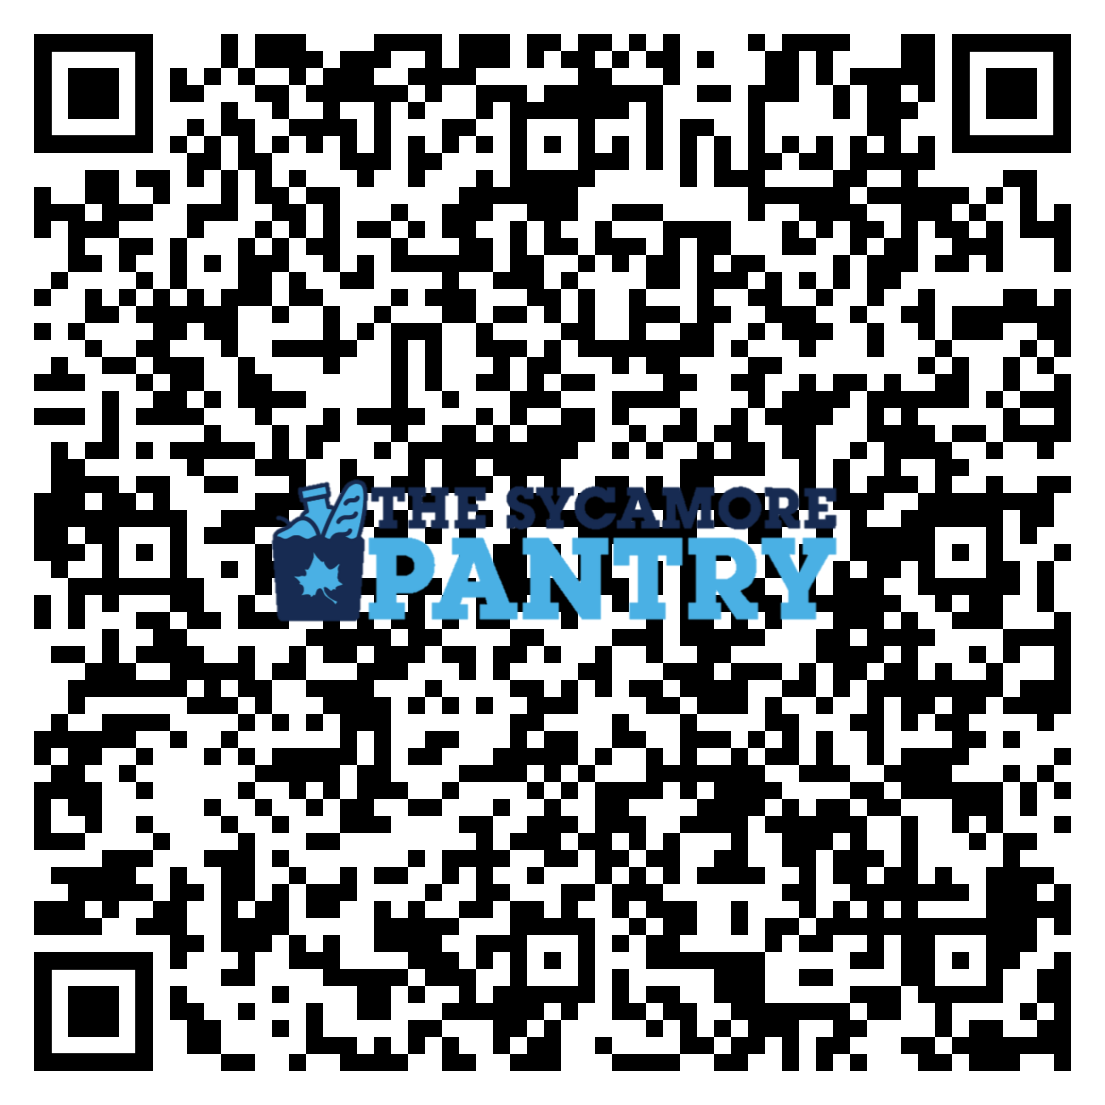 The Sycamore Pantry Appointment link QR code